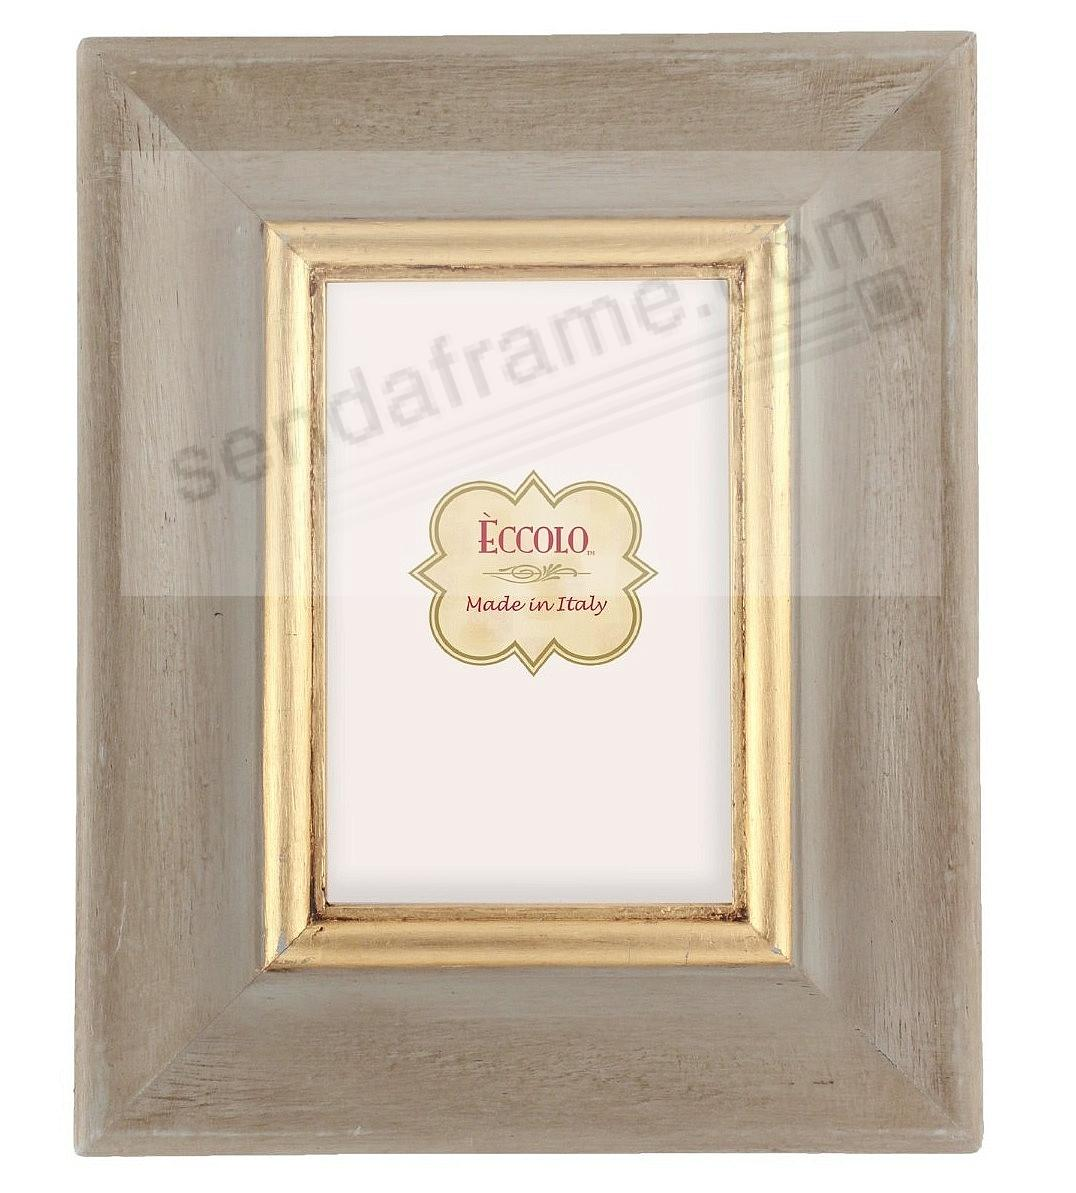 antique grey and gold carved wood 5x7 frame by eccolo. Black Bedroom Furniture Sets. Home Design Ideas